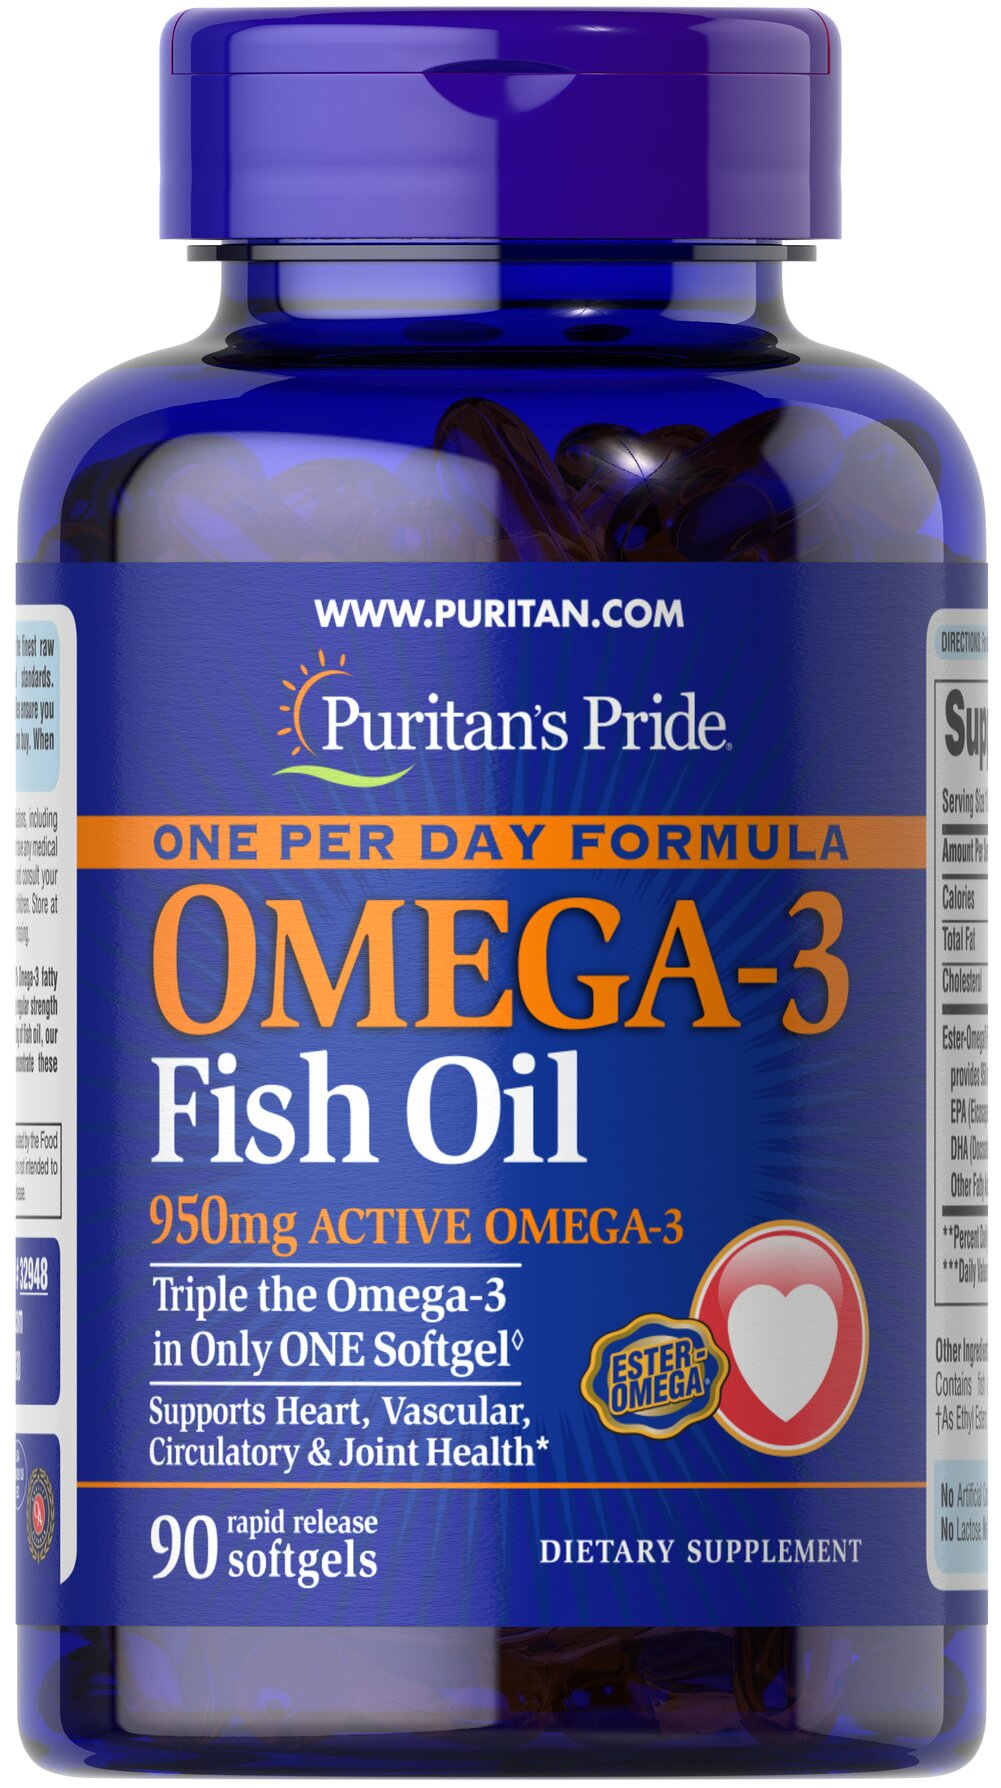 One Per Day Fish Oil 1360 mg <p><strong>Puritan's Pride One Per Day Formula</strong></p>Omega-3 Fish Oil contains a super high concentration of 70% providing 950 mg from 1360 mg of fish oil. ** <p></p><p>While regular strength fish oils typically contain 300 mg of Omega-3s from 1000 mg of fish oil, our formula undergoes additional purification steps to concentrate these essential fats while removing unwanted compounds. **</p><p>Omega-3 fa